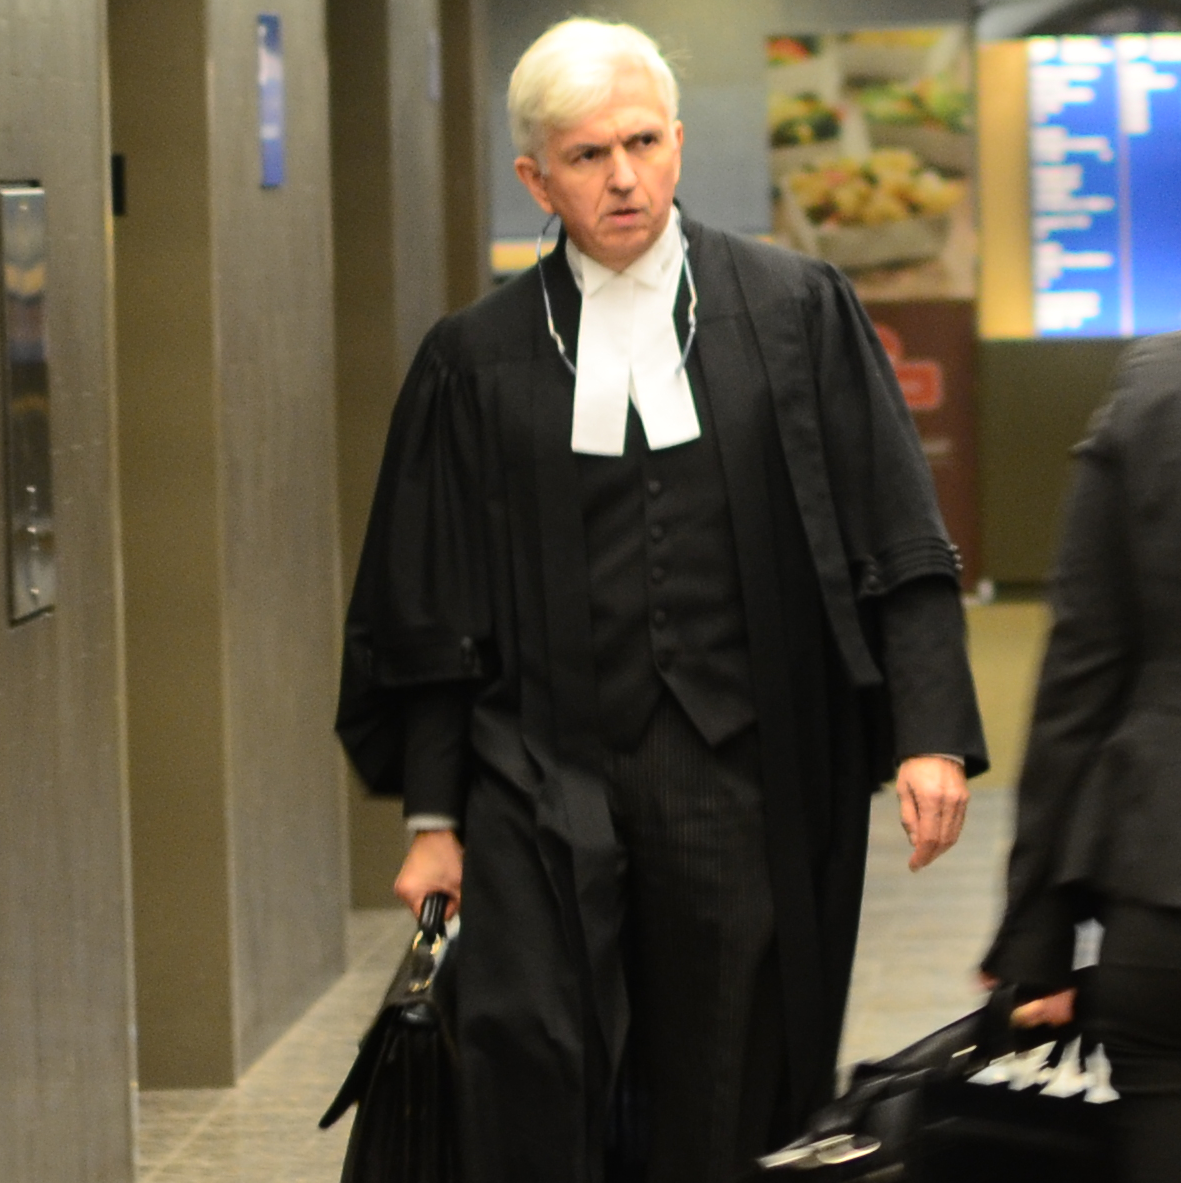 Luka Magnotta S Case Is Now Closed